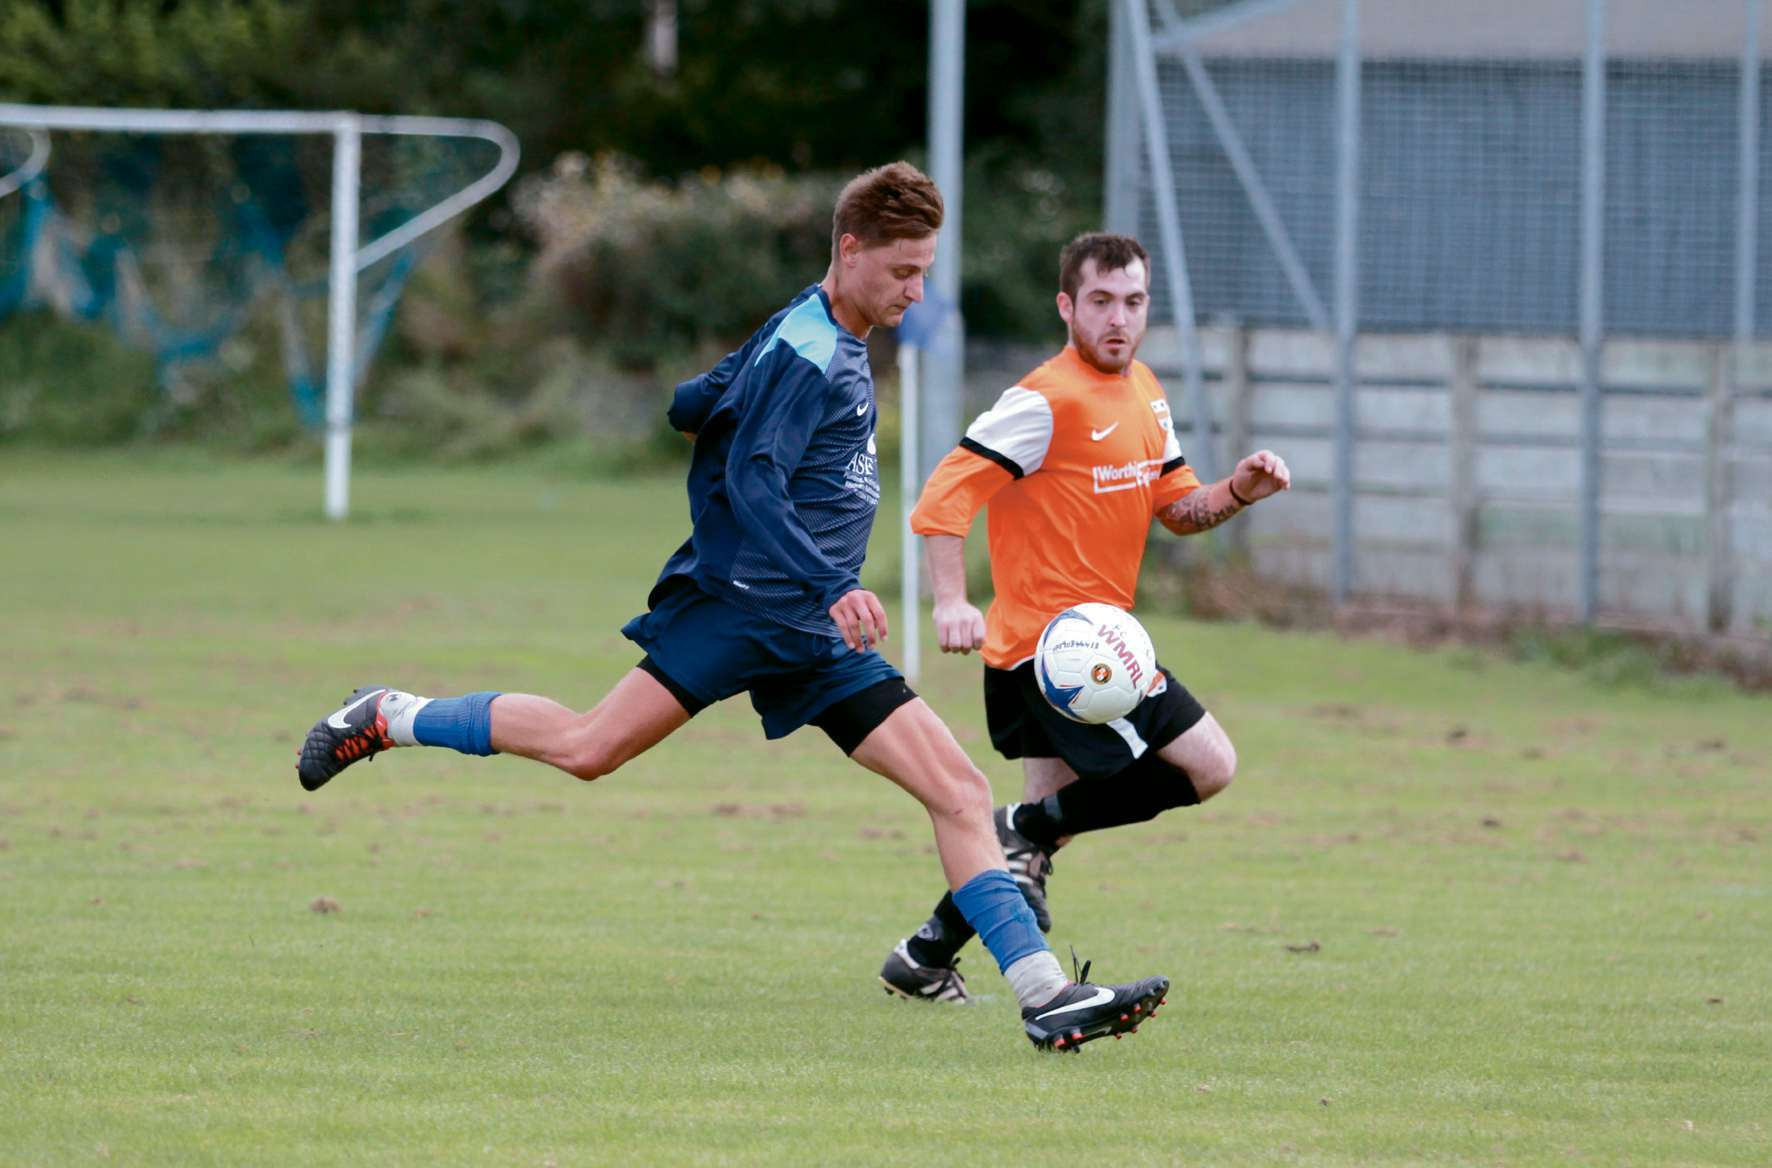 Collett and Breakwell on target in defeat